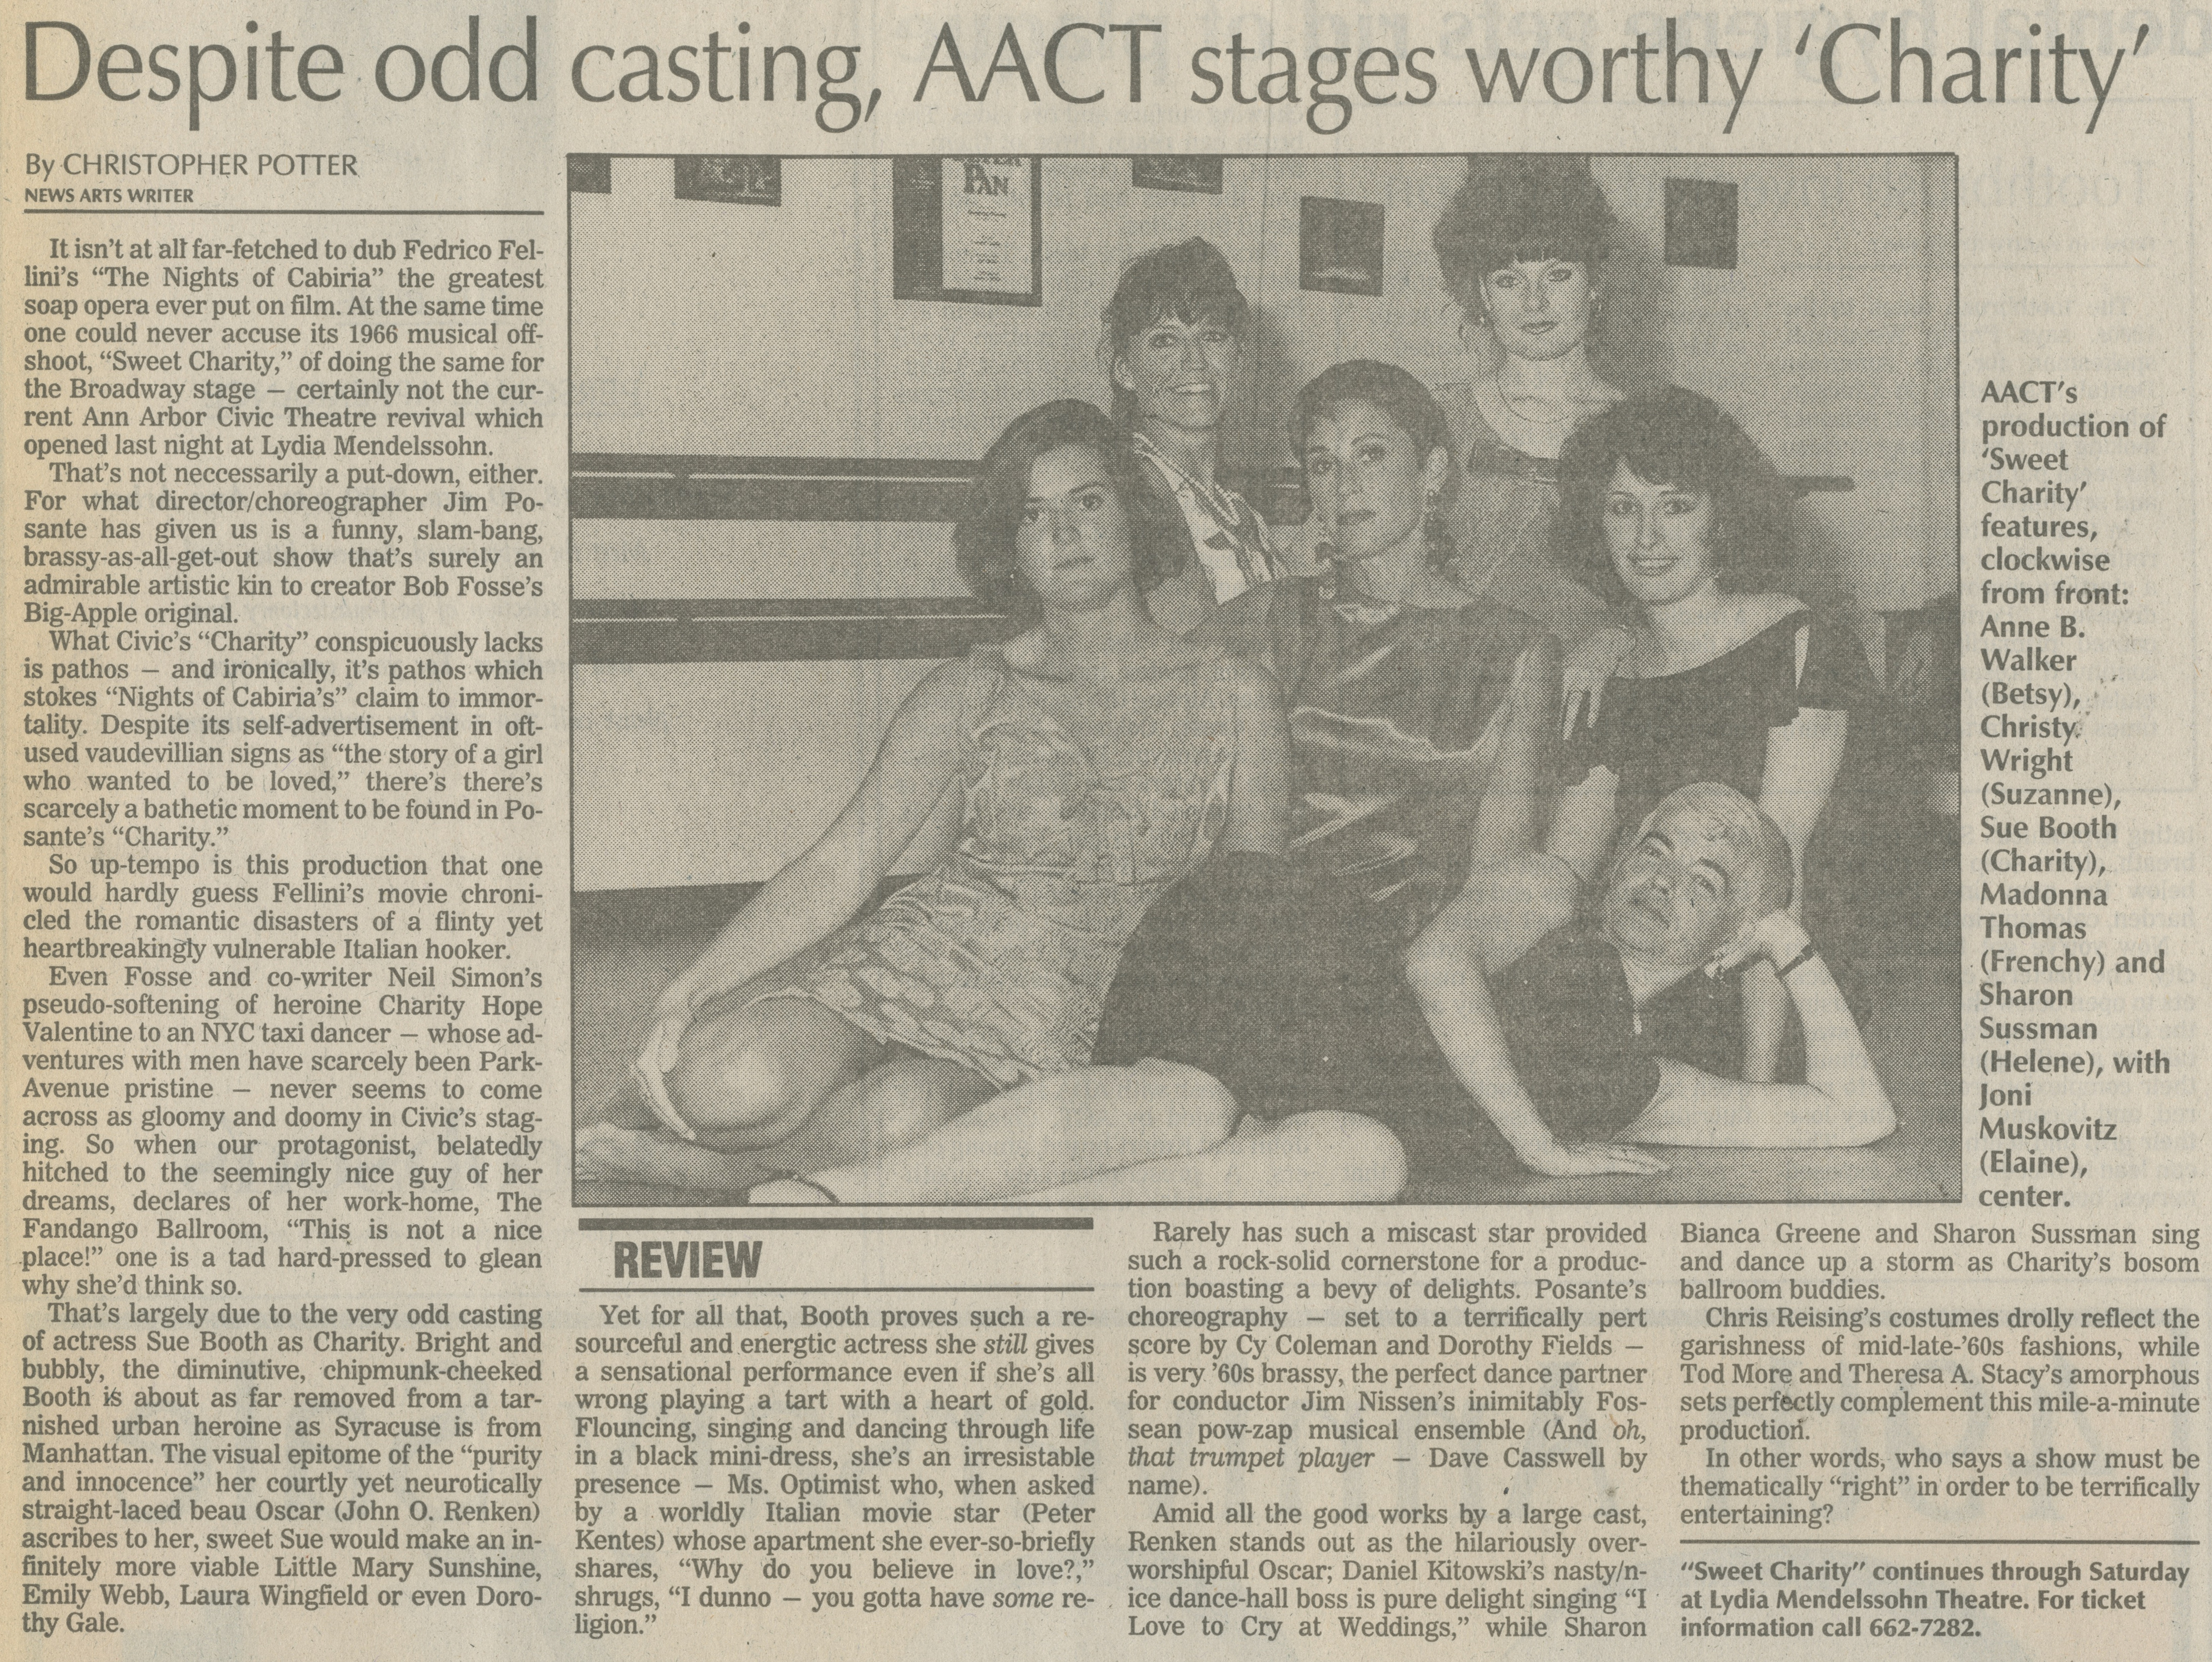 Despite Odd Casting, AACT Stages Worthy 'Charity' image